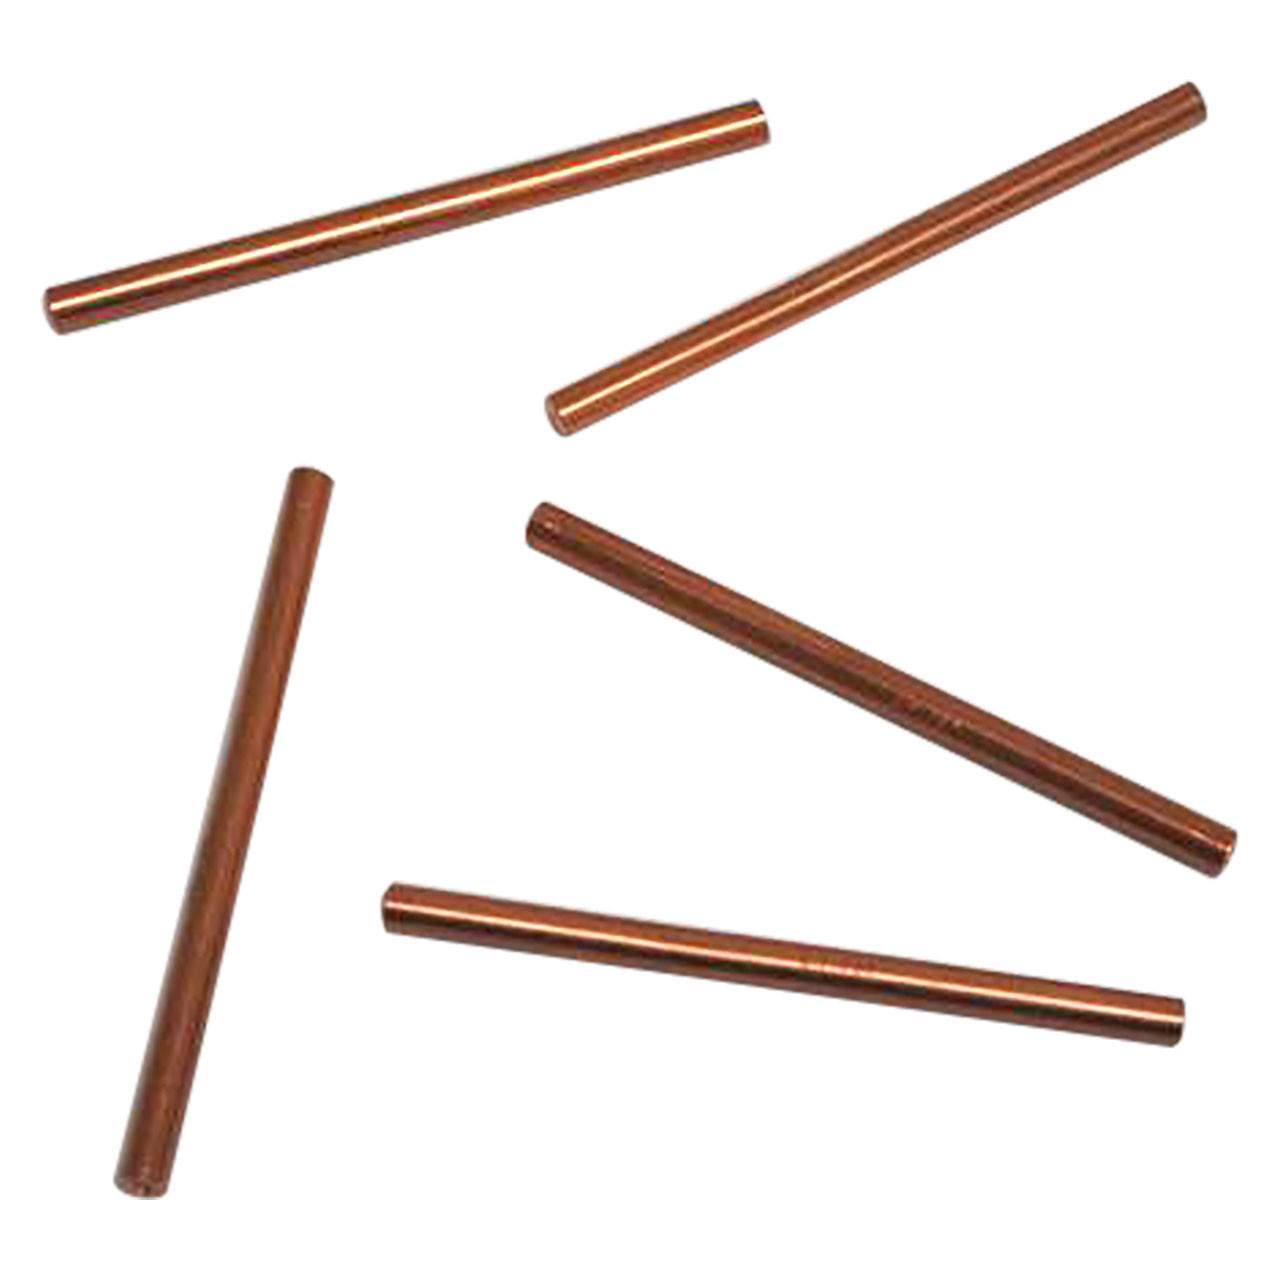 5 tips Miller 094260 Tip,Contact SL .047 WIRE X 4.000 for Spoolmatic 1,2,3